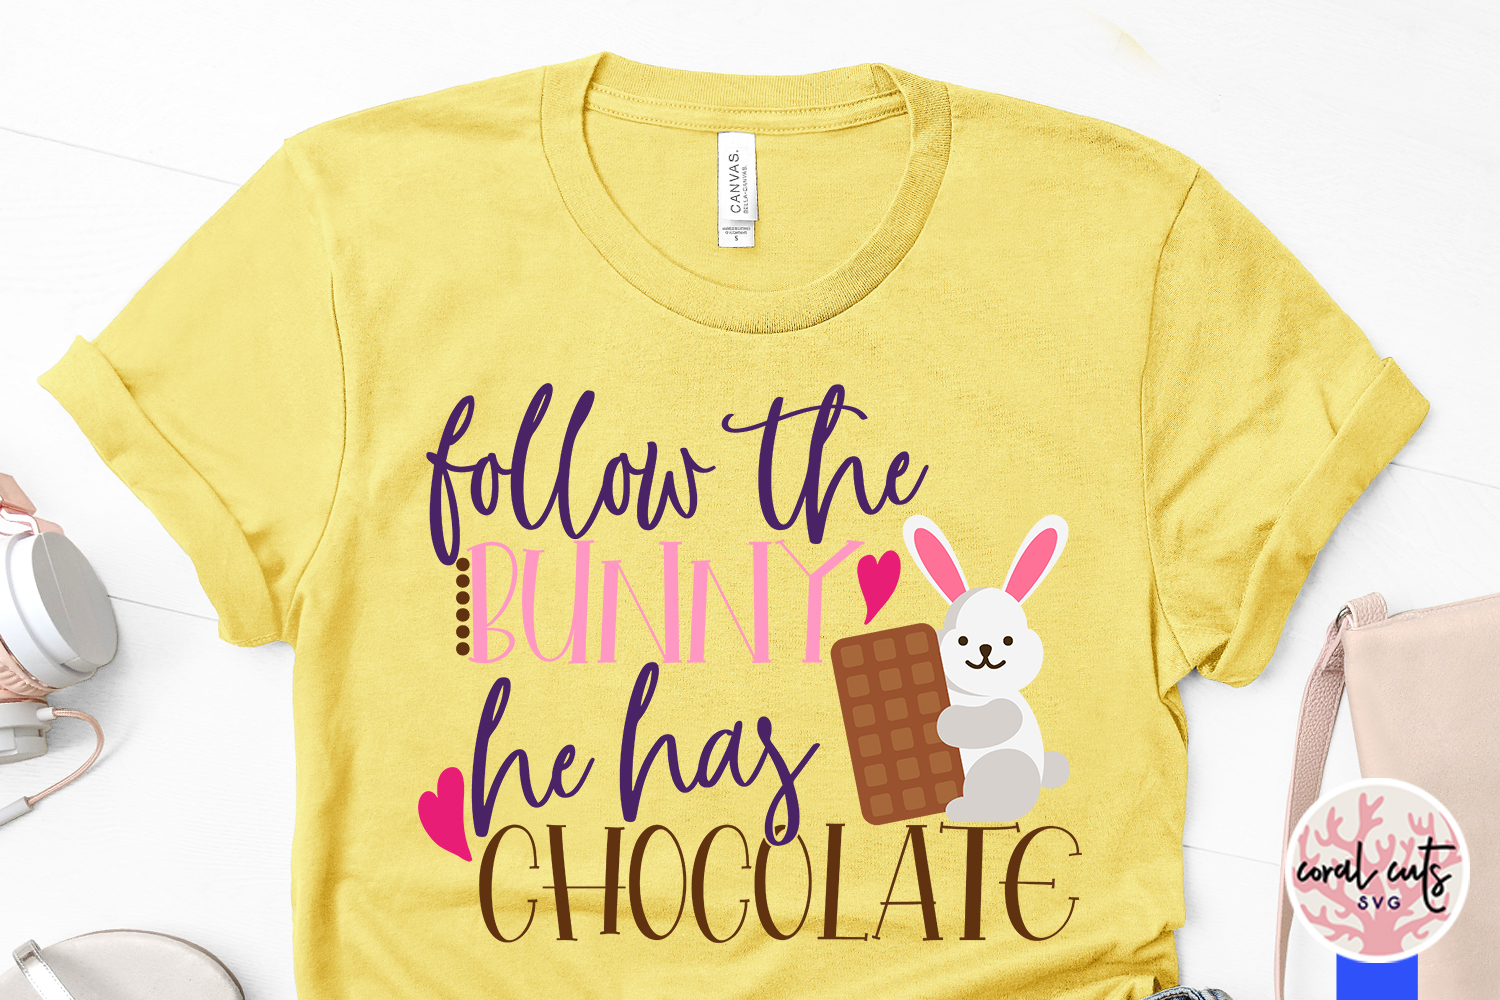 Follow the bunny he has chocolate - Easter SVG EPS DXF PNG example image 3